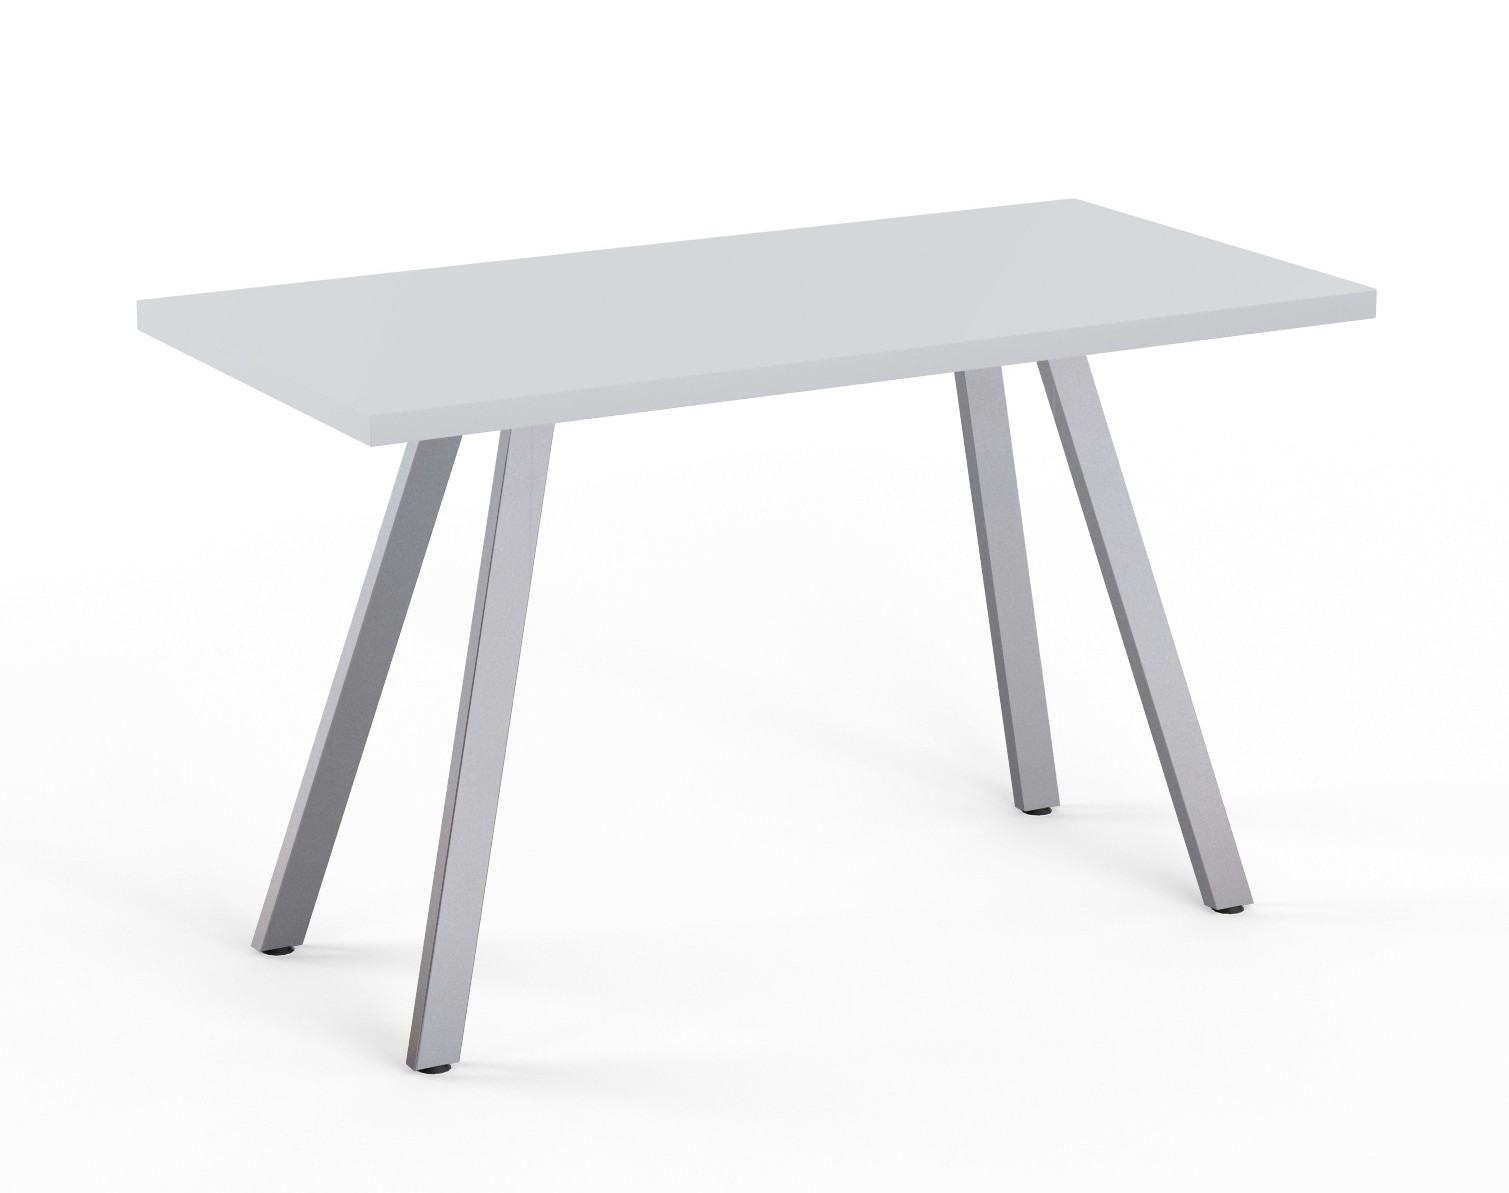 light grey aim table by special-t